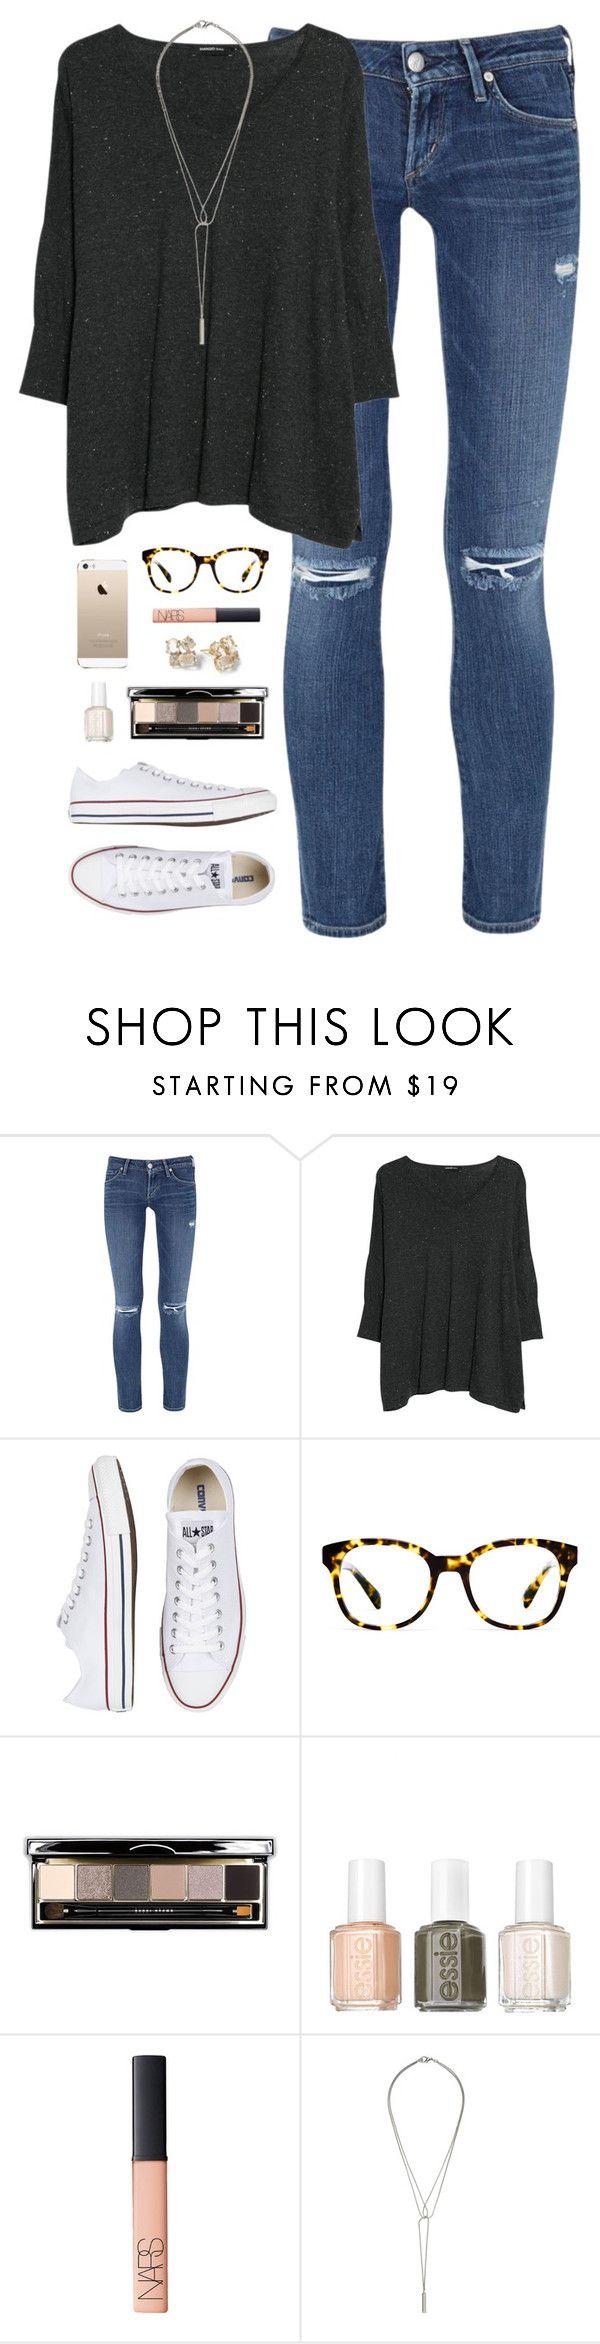 """""""ootd 1.13.15"""" by classically-preppy ❤ liked on Polyvore featuring Citizens of Humanity, MANGO, Converse, Warby Parker, Bobbi Brown Cosmetics, Essie, NARS Cosmetics, Kate Spade and CO"""